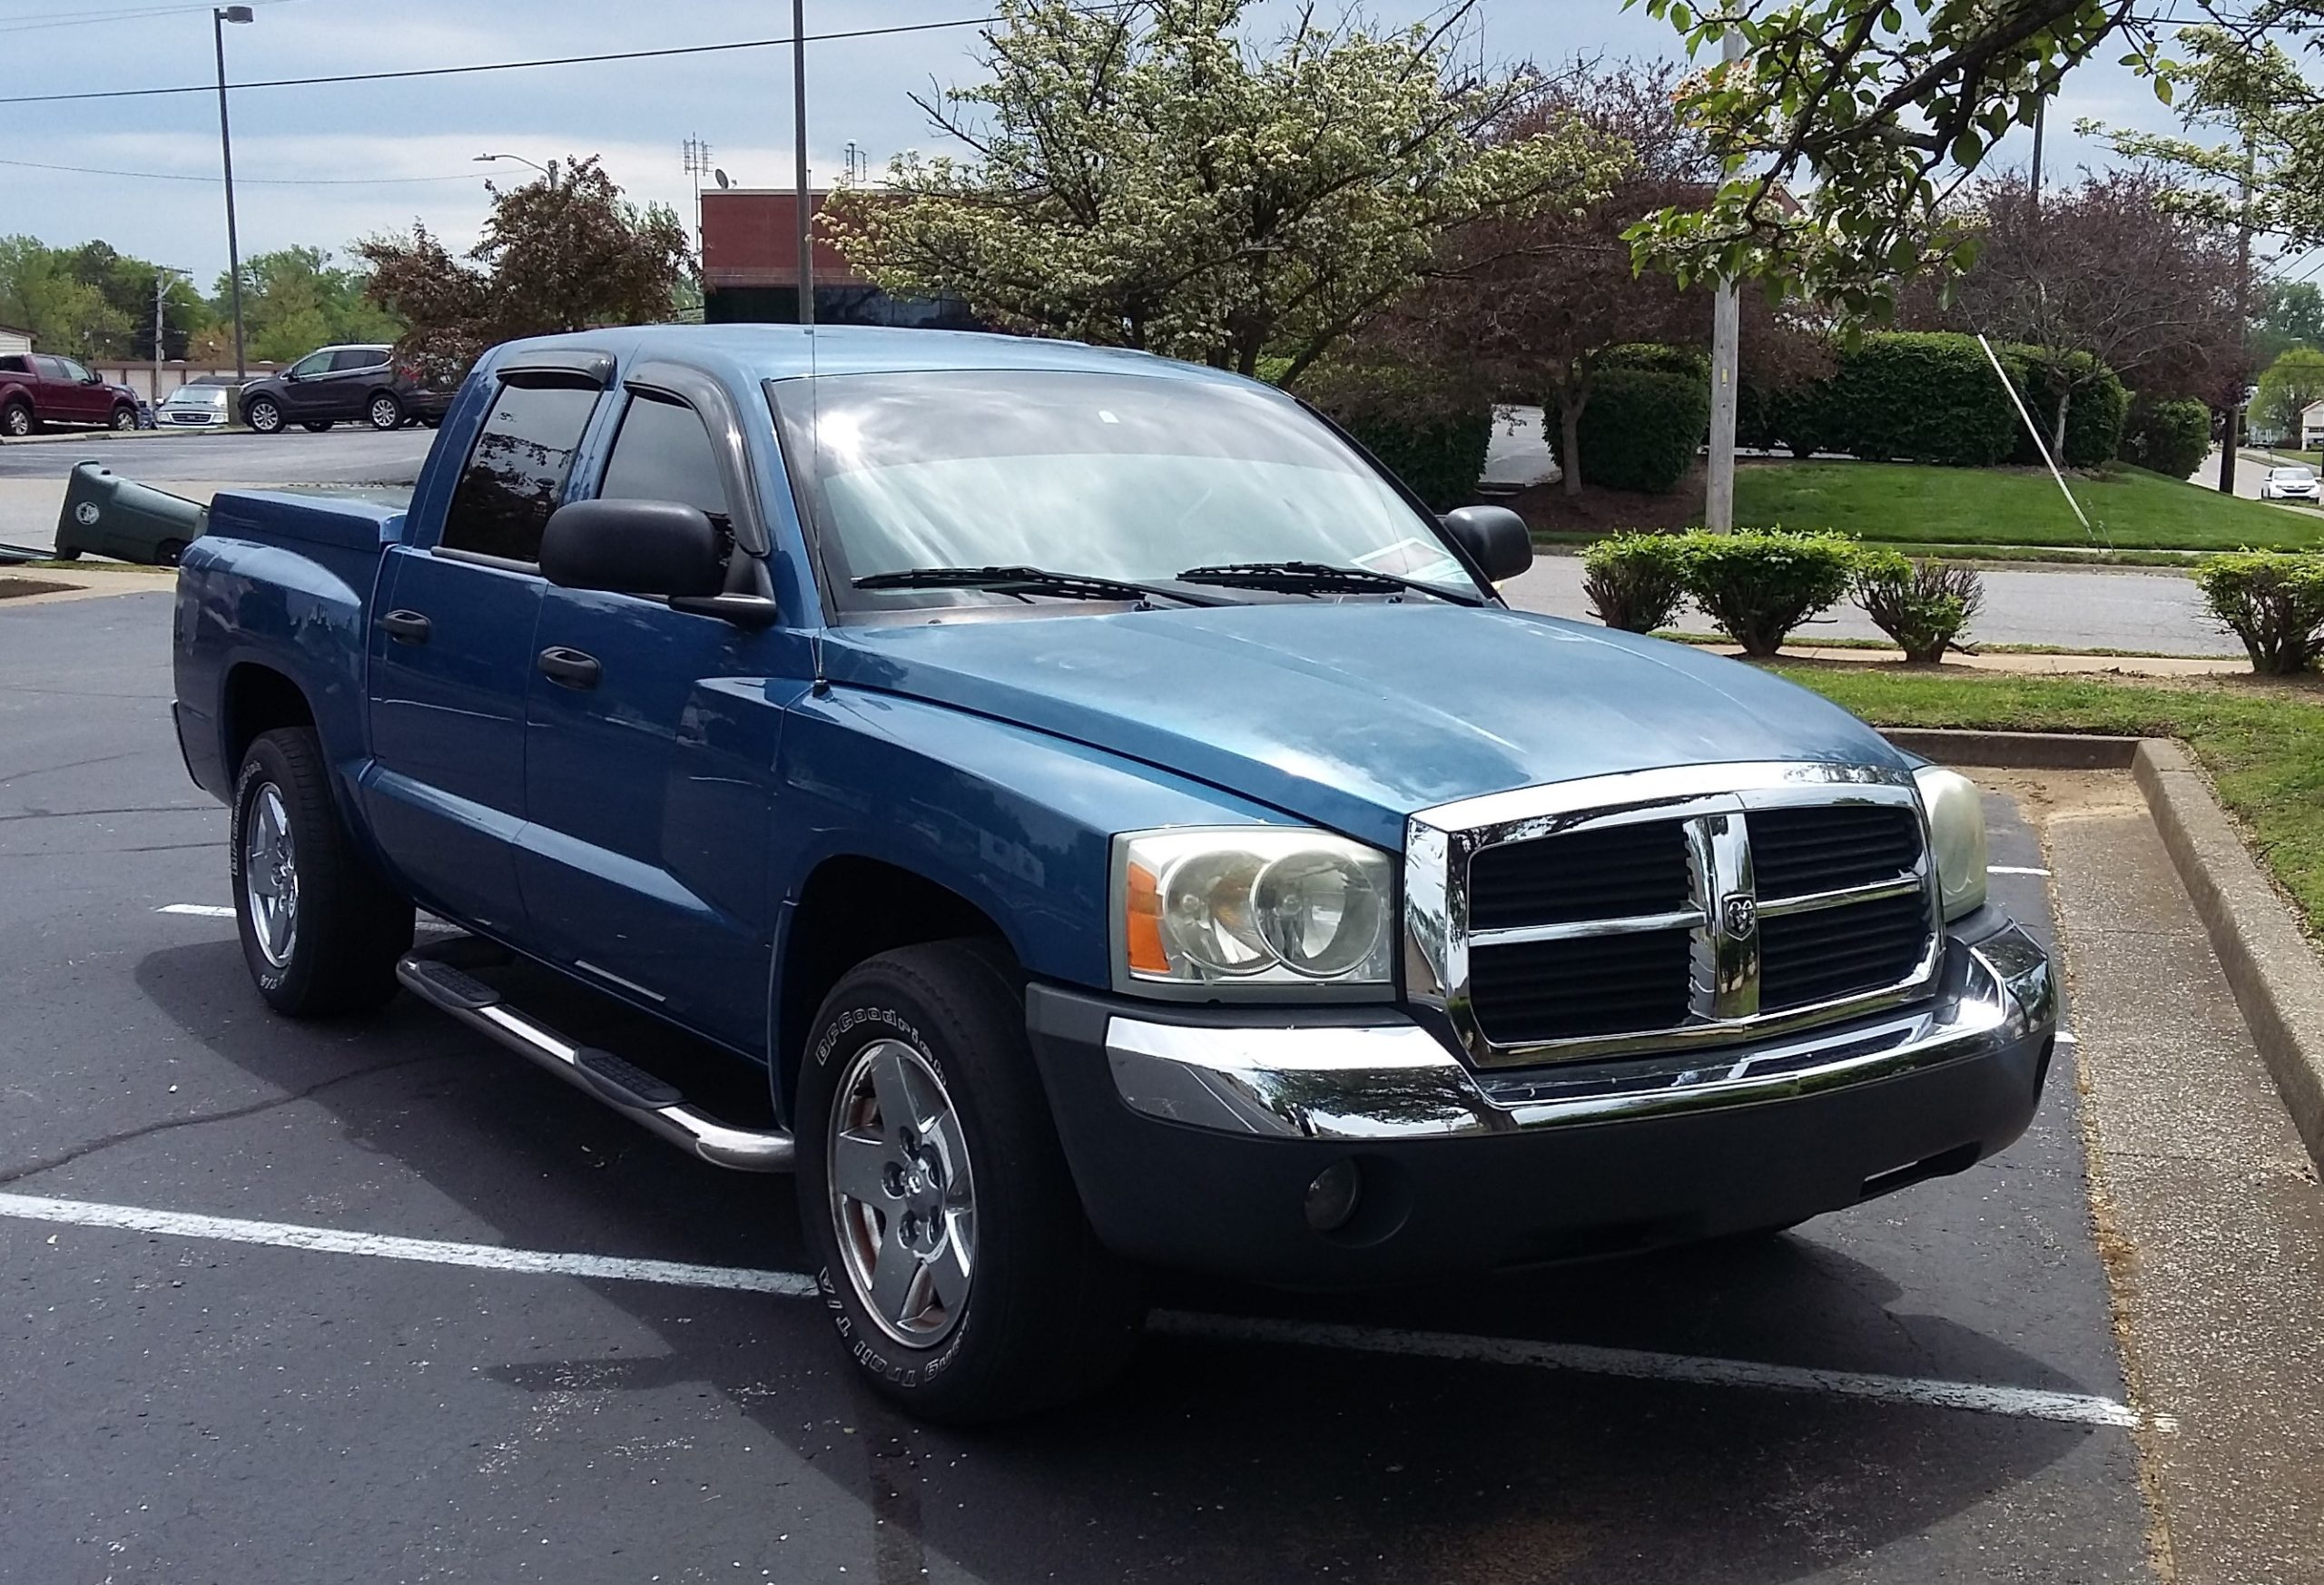 2005 Dodge Dakota Quad Cab SLT 4.7 LV8